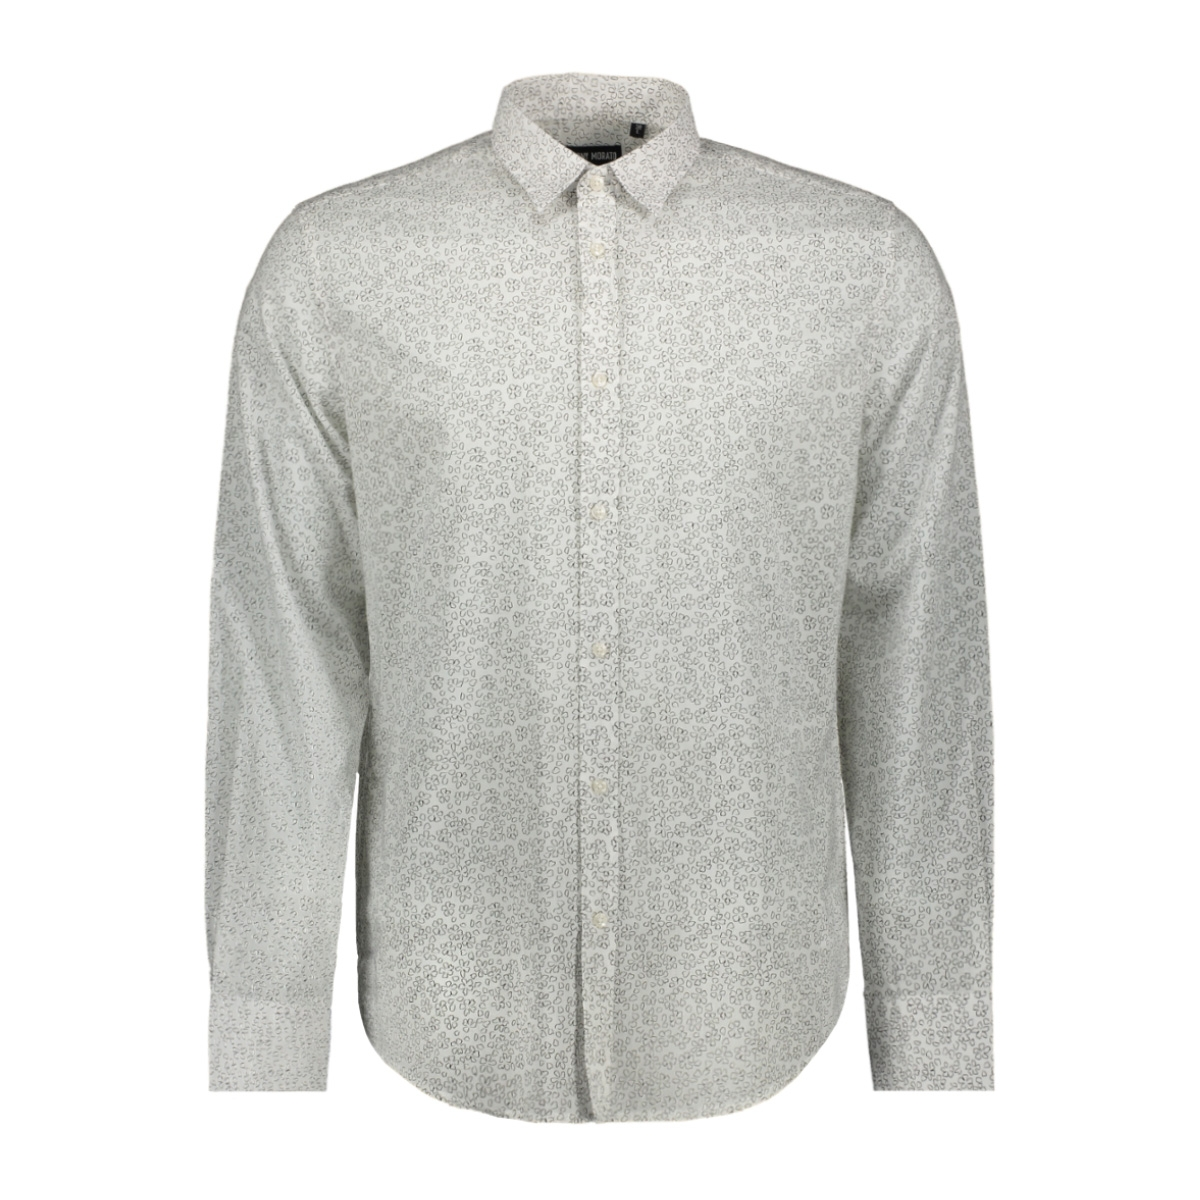 shirt long sleeves mmsl00587 antony morato overhemd 1000 white